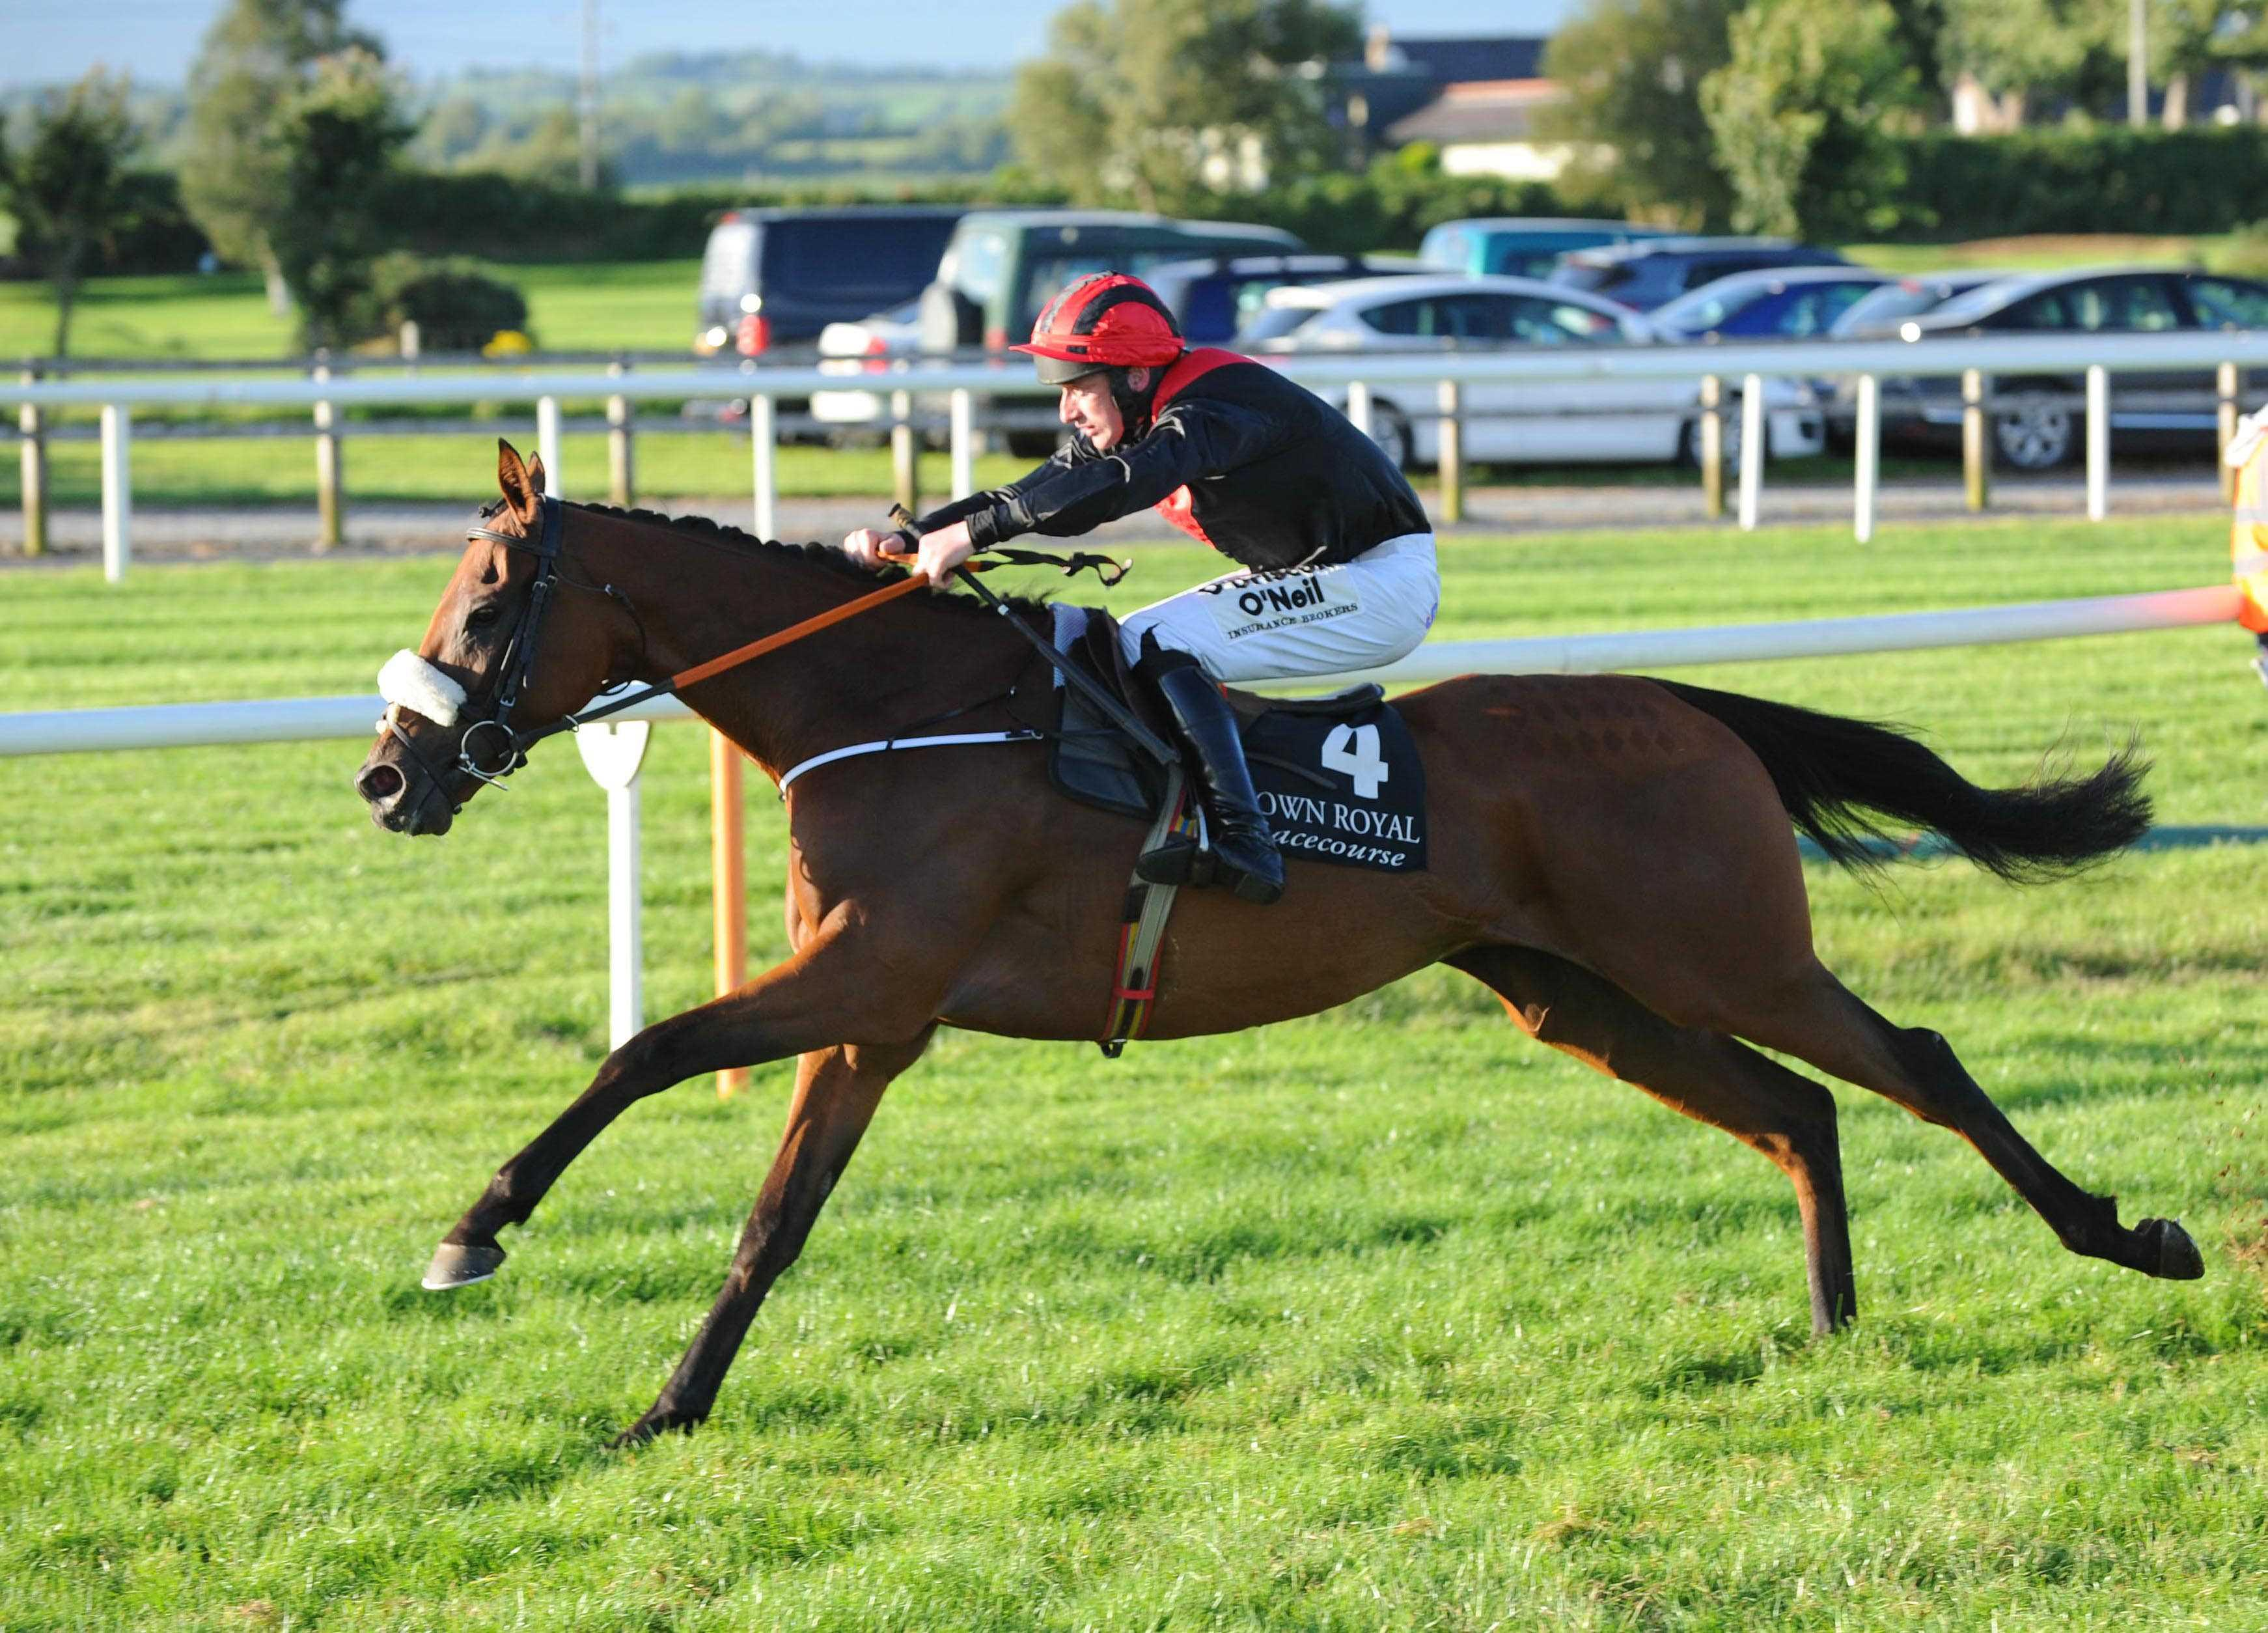 TALKING TRAINER: Marking your card for Listowel